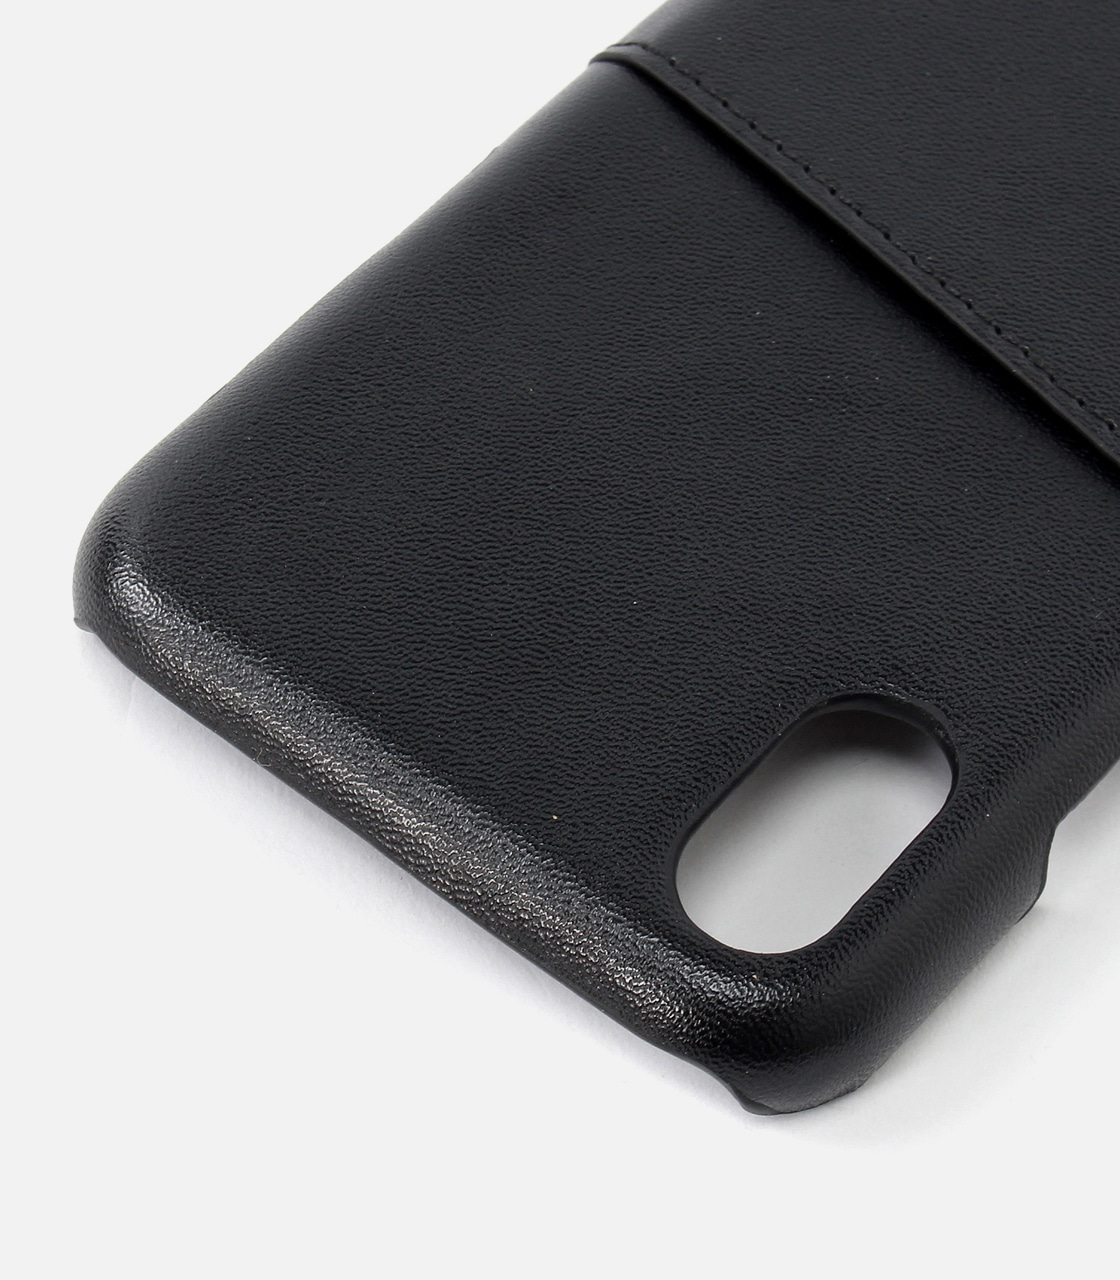 【AZUL BY MOUSSY】BLOCKING PHONE CASE 詳細画像 BLK 3